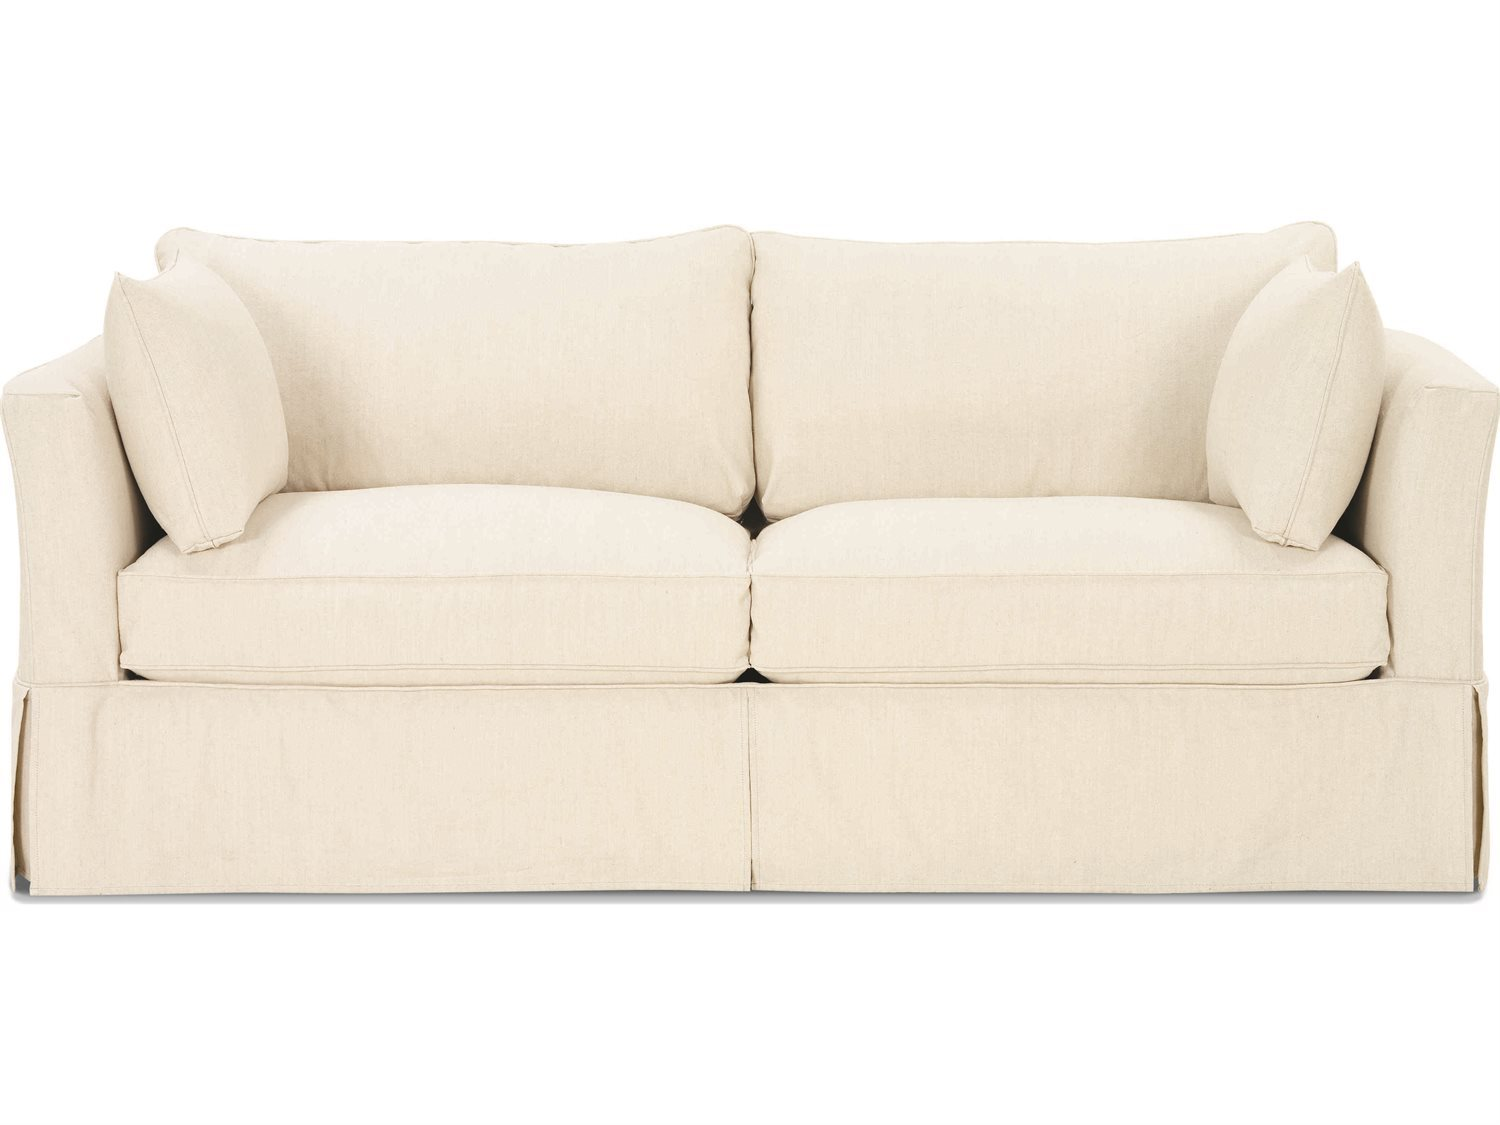 Rowe Furniture Darby Queen Sleeper Sofa With Slipcover Open Box H239q 000